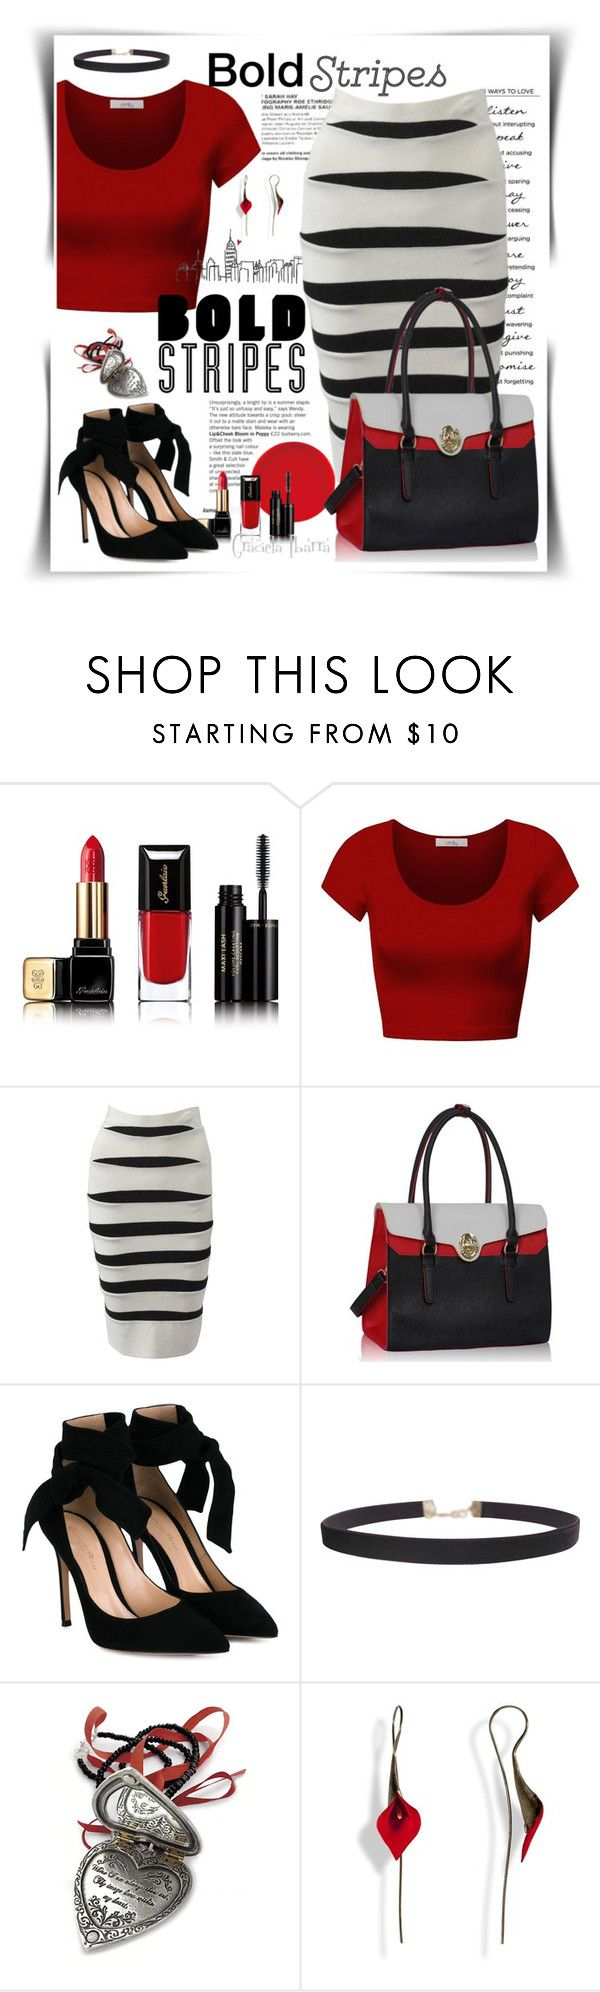 """""""Dearing and bold"""" by grachy ❤ liked on Polyvore featuring Guerlain, DK, Hervé Léger, Gianvito Rossi, Humble Chic, stripes, bold, polyvoreeditorial and BoldStripes"""